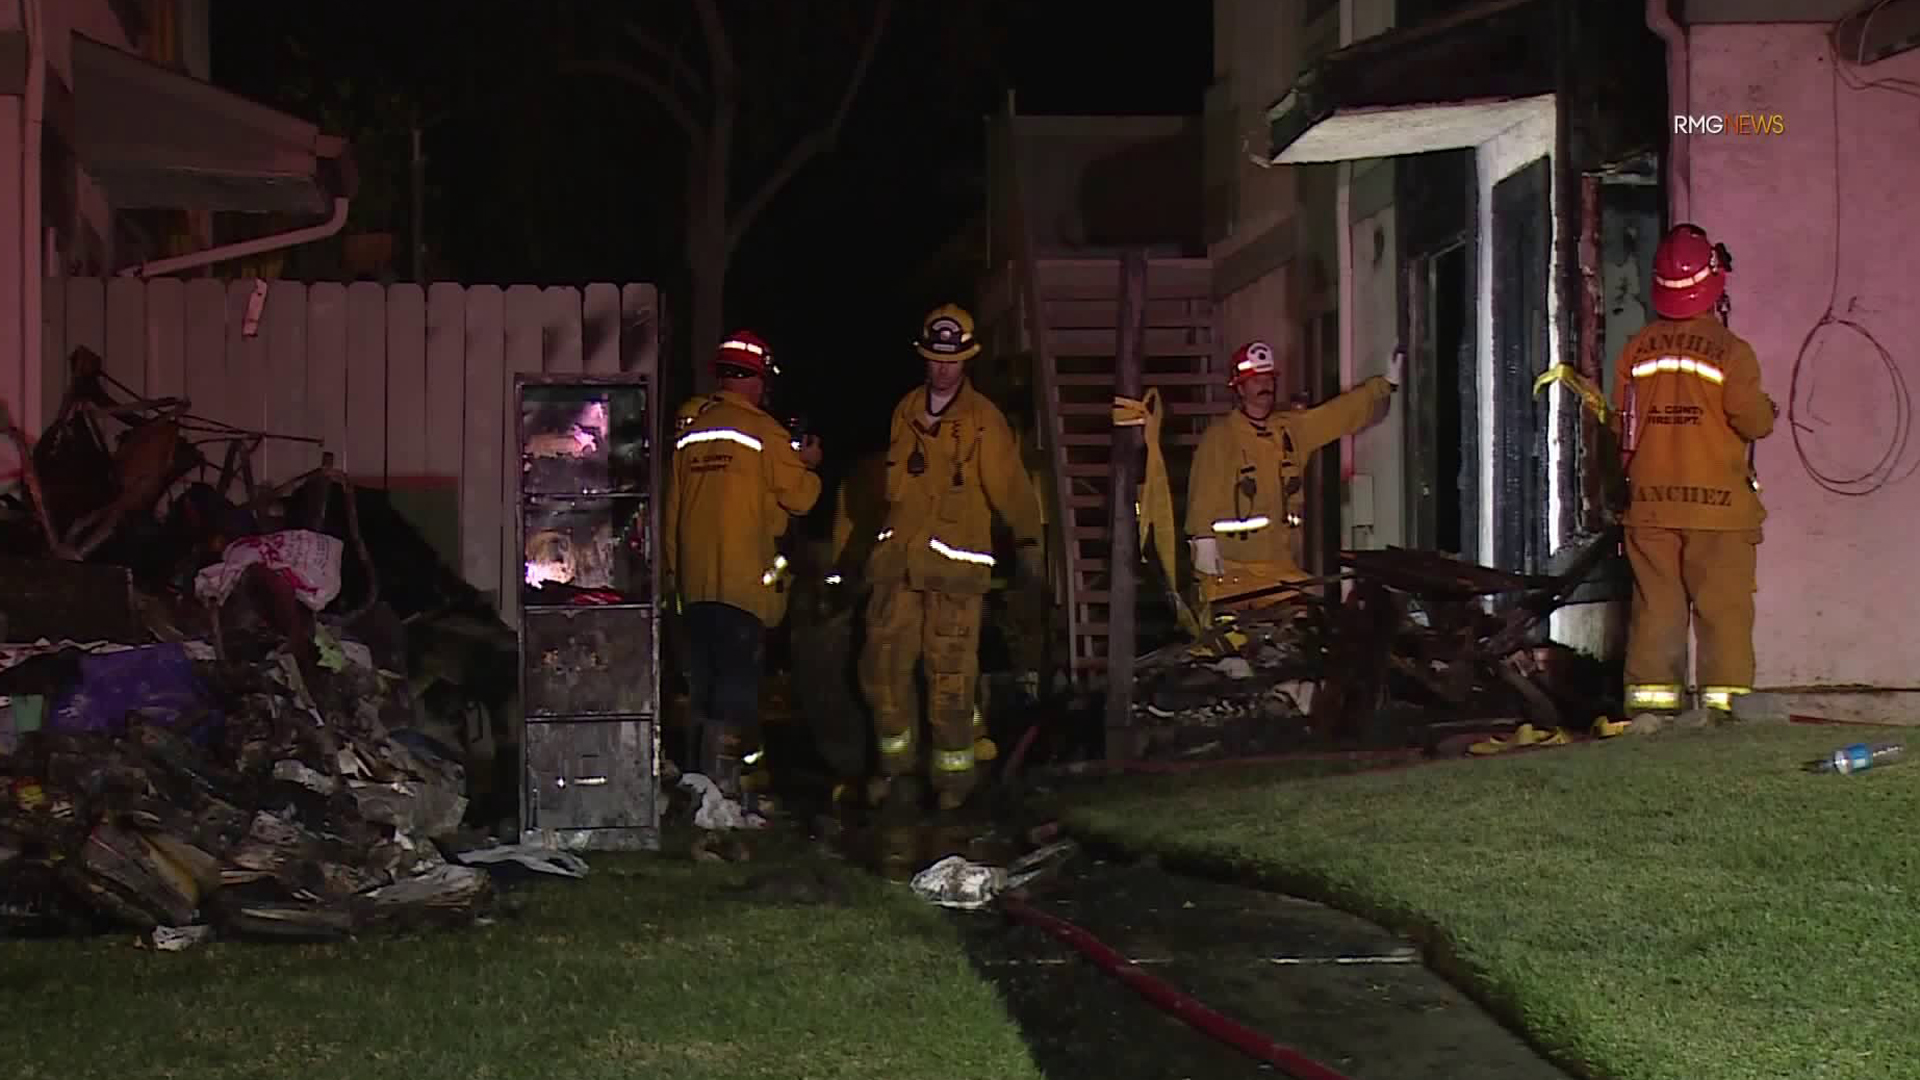 Firefighters respond to a double fatal fire in Azusa on Oct. 25, 2019. (Credit: RMGNews)